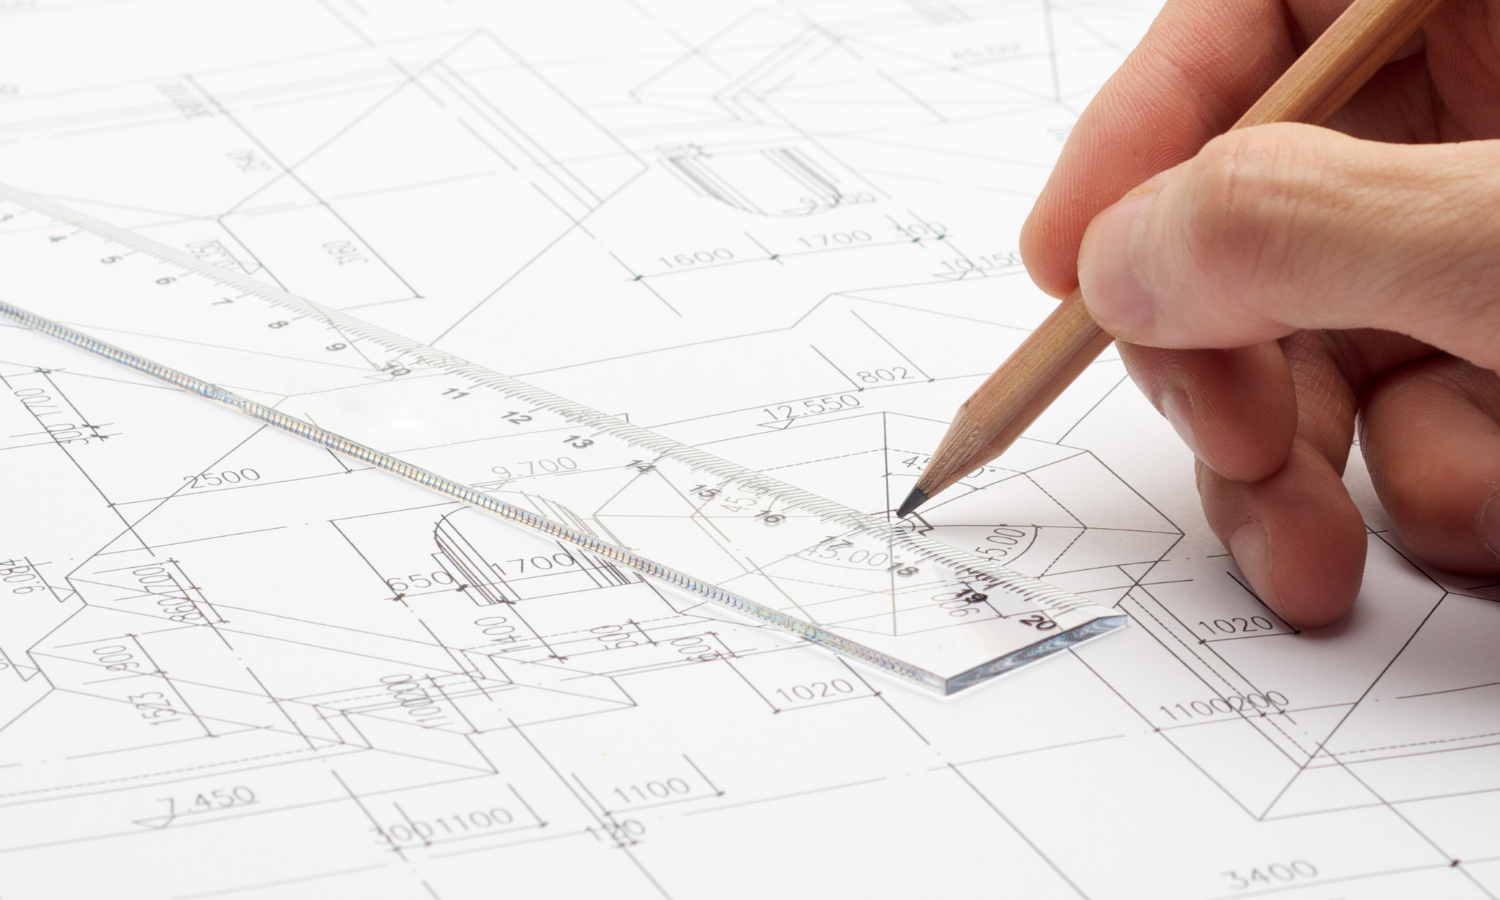 engineering sketch with clear 12 inch plastic ruler, hand holding a pencil, and a blueprint type part drawing on the table